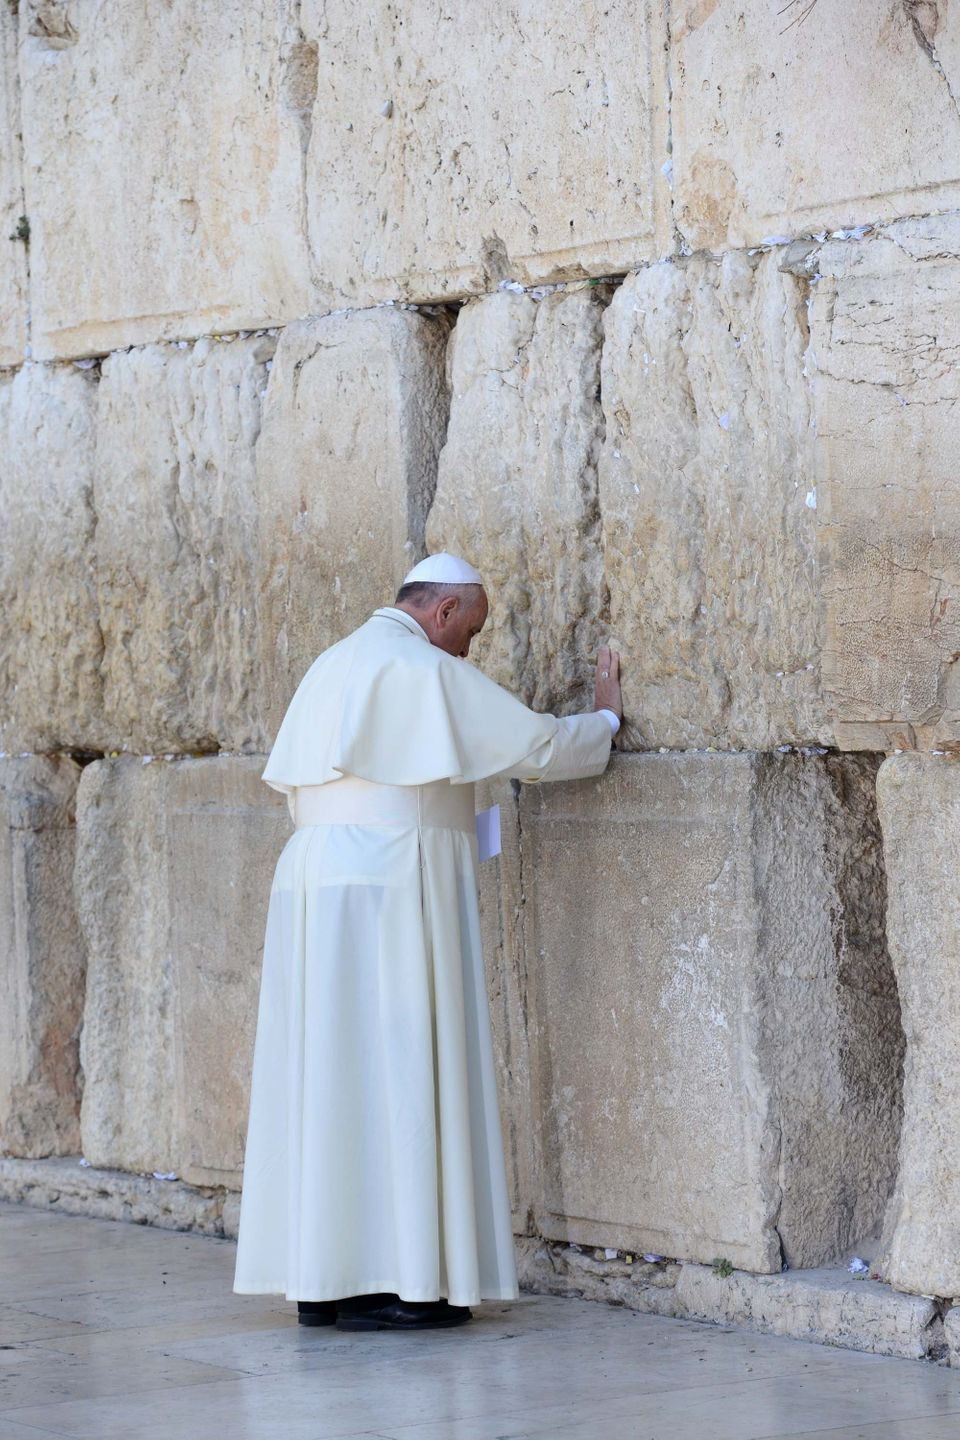 """""""May no one abuse the name of God through violence.""""  <a href=""""https://www.huffpost.com/entry/pope-francis-western-wall_n_539"""